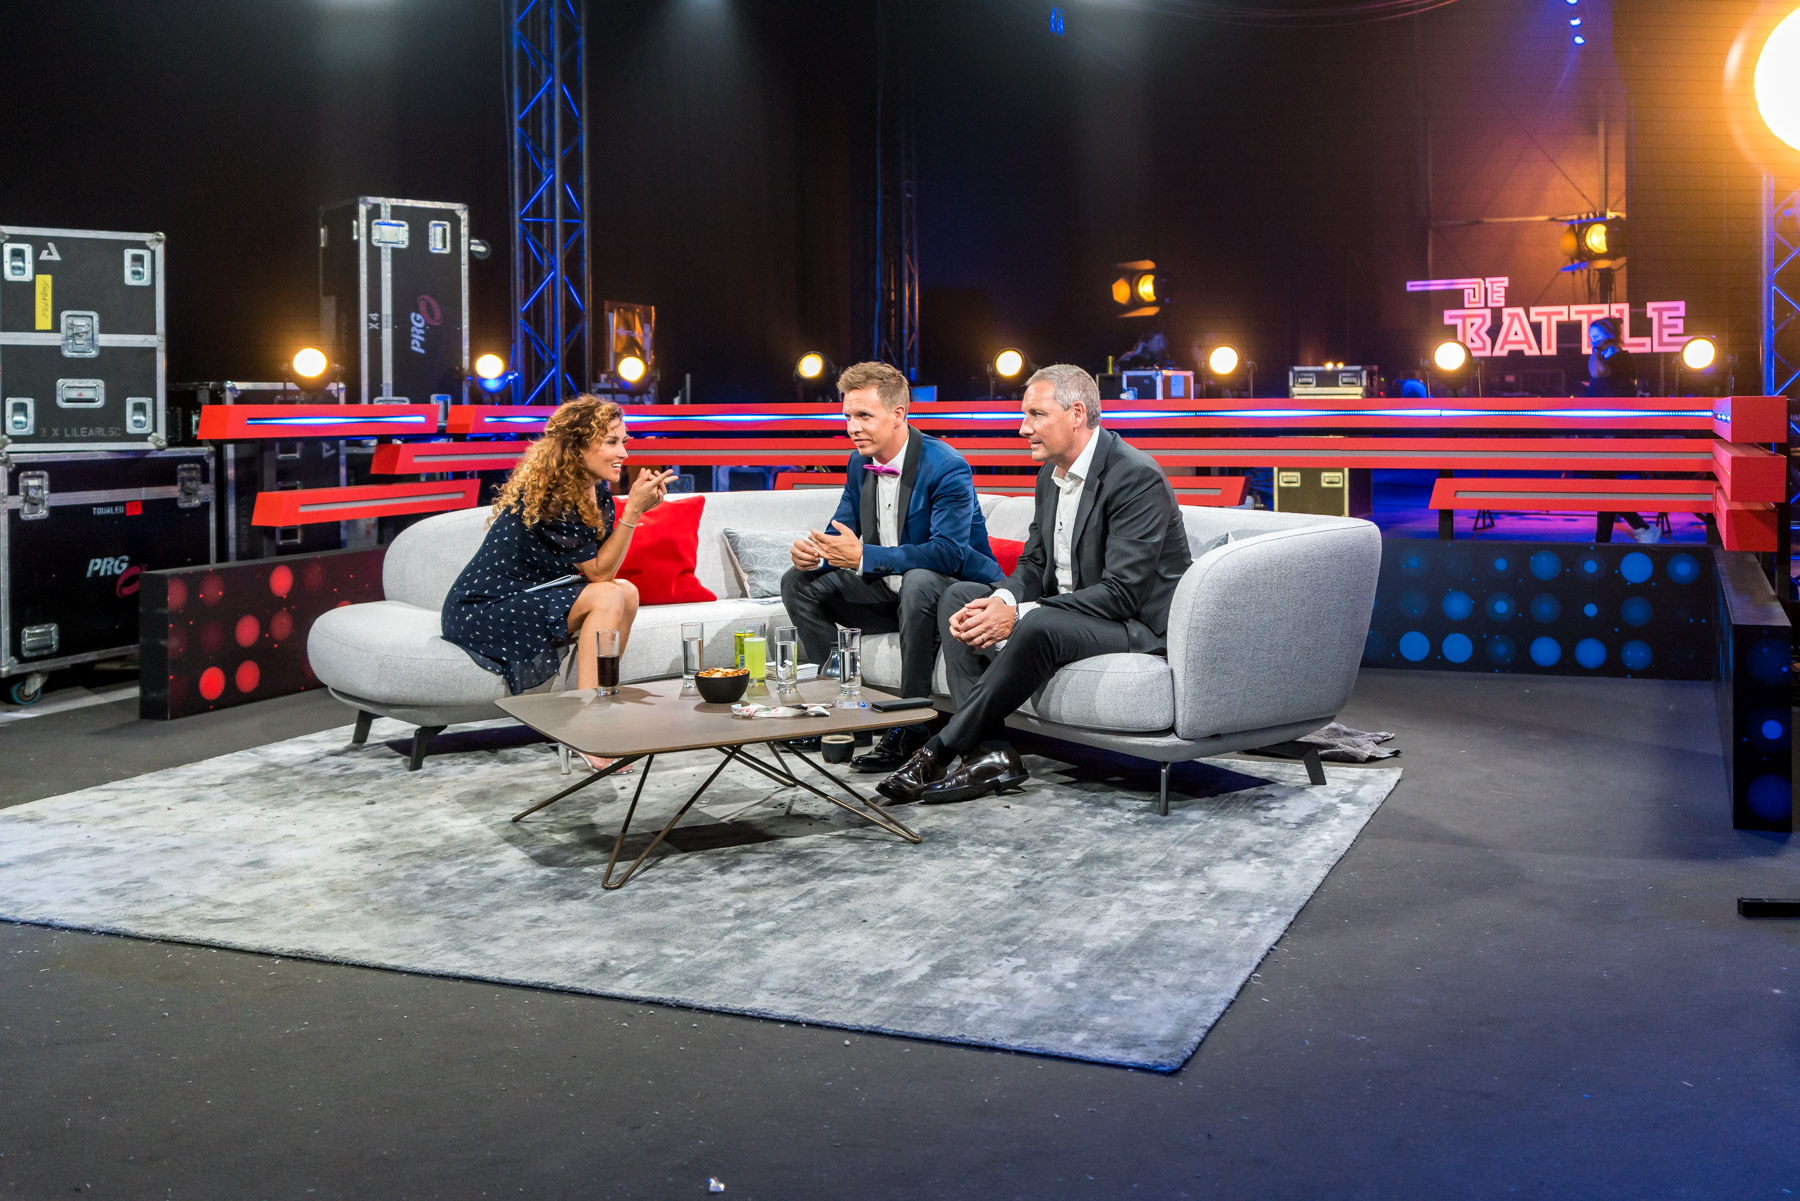 TV-decor - De battle (24)